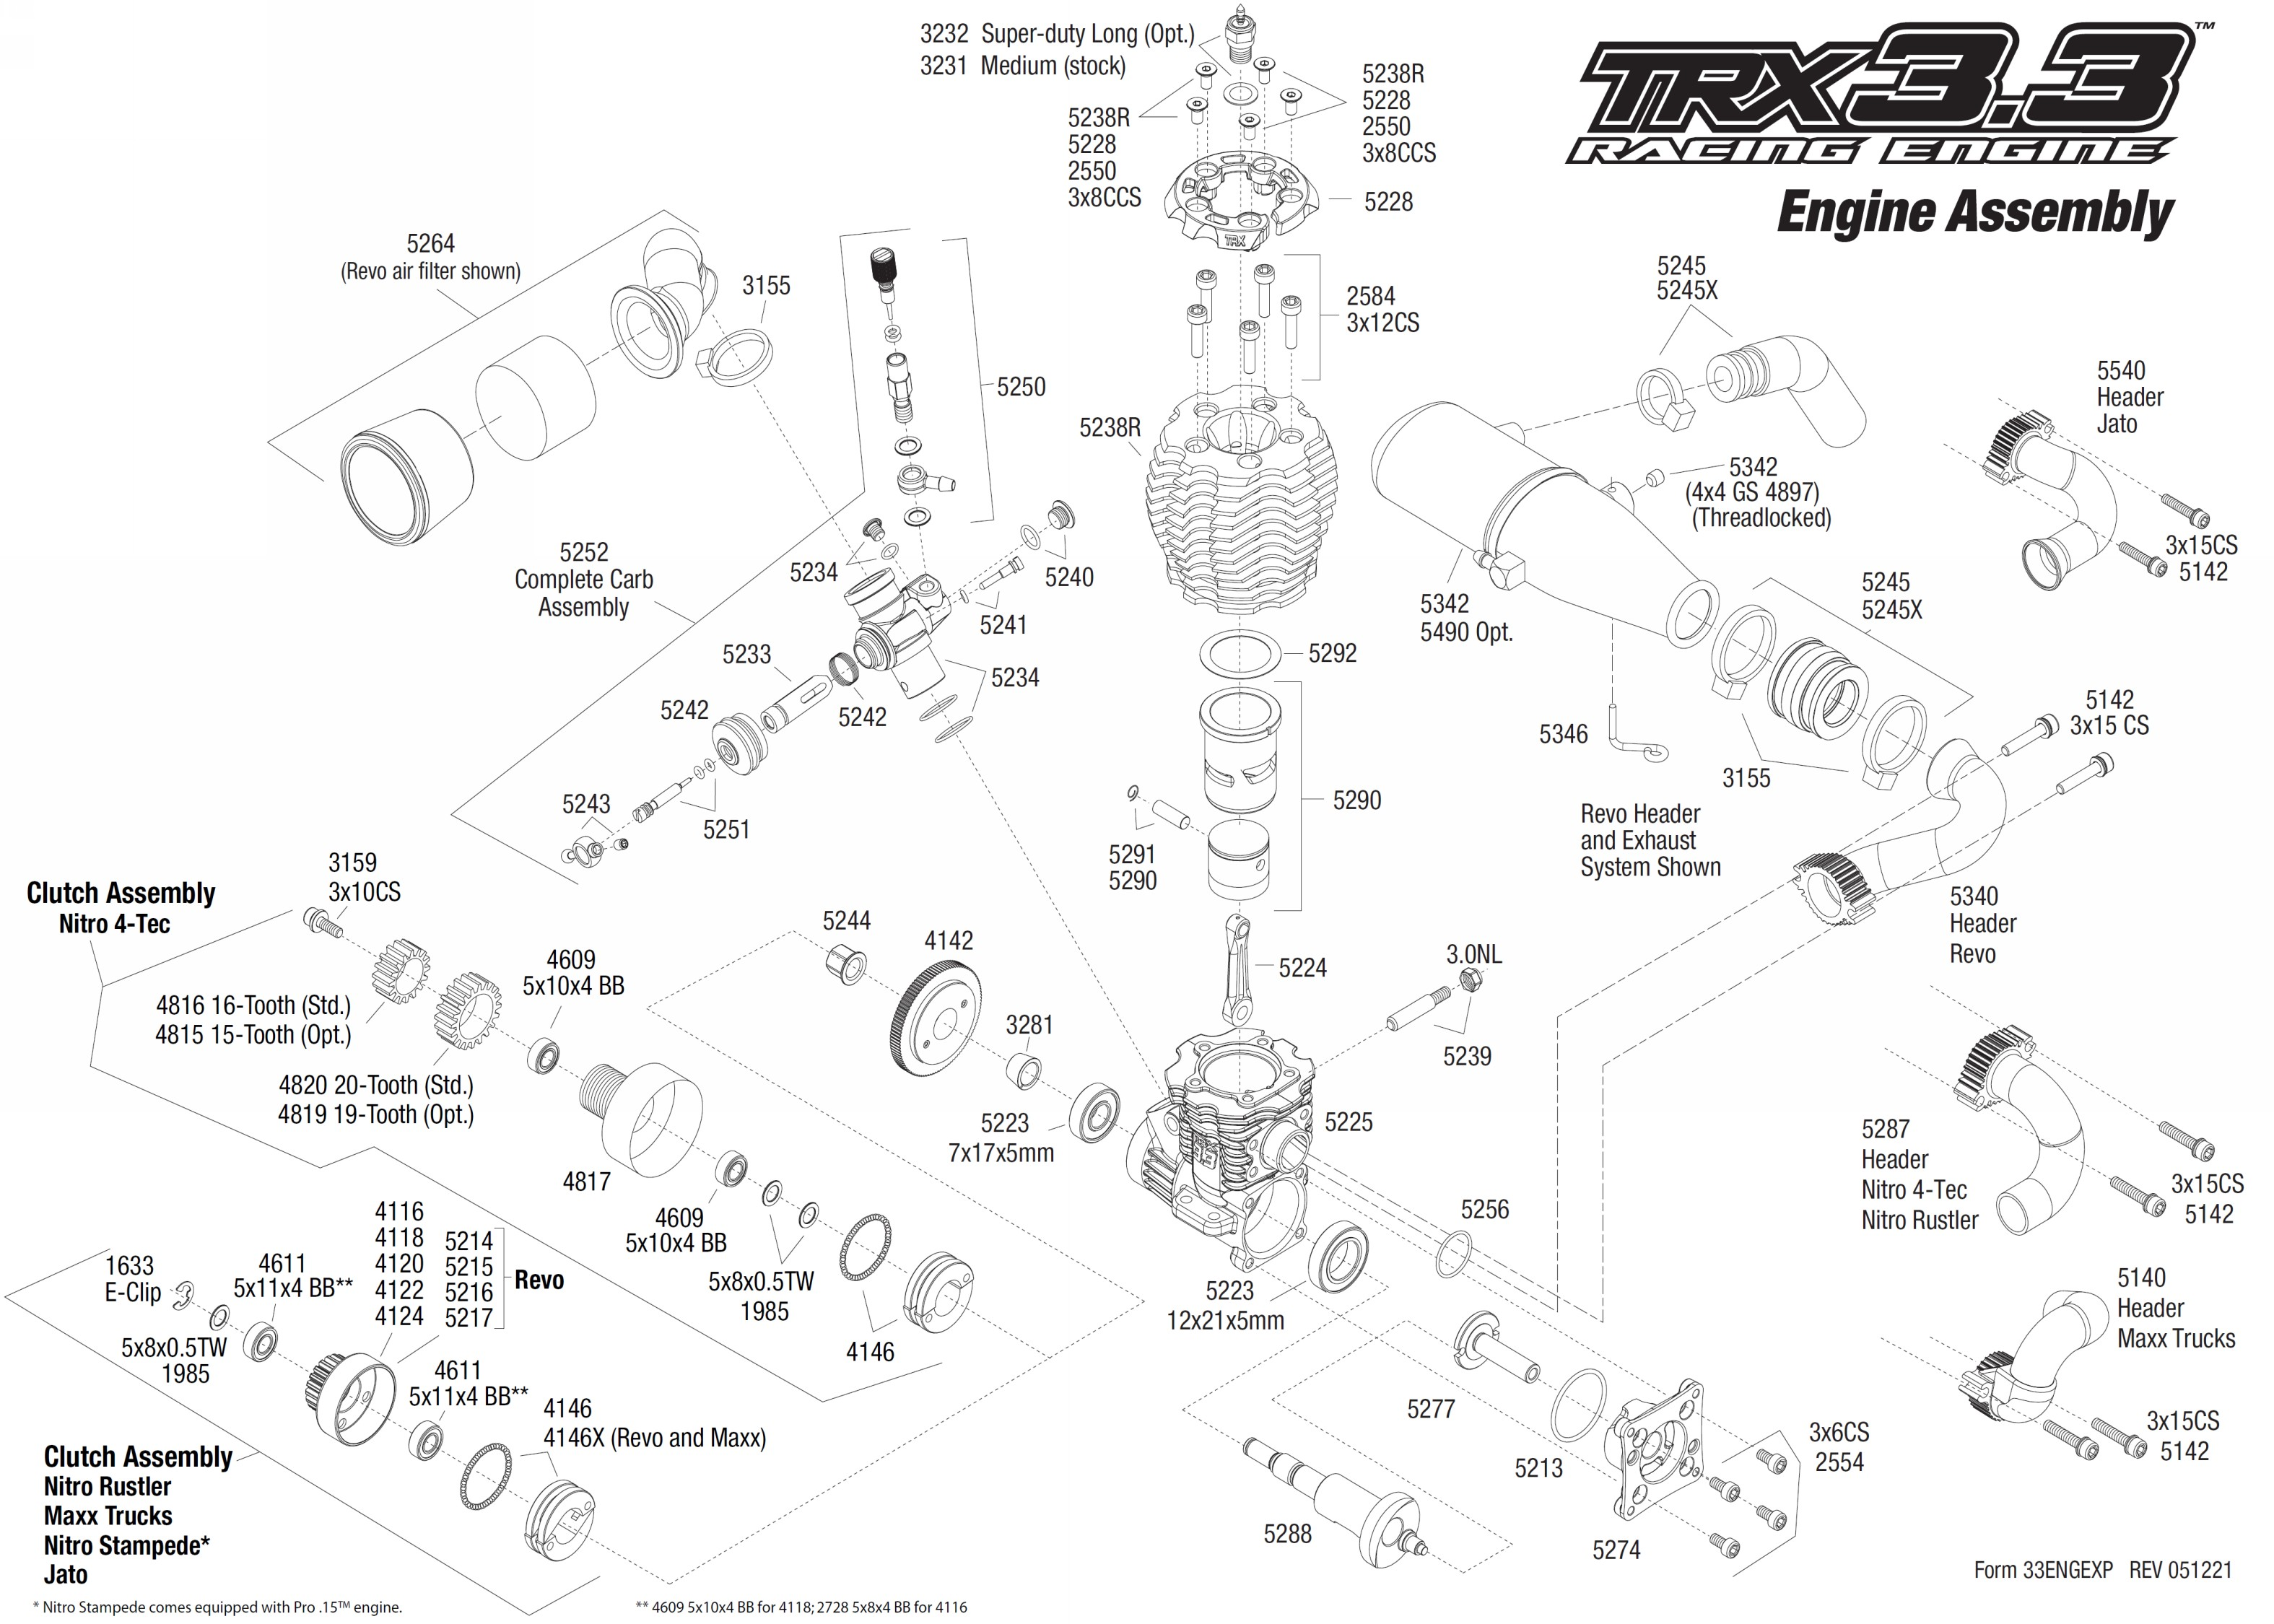 Traxxas 3 3 engine diagram free download wiring diagram exploded view traxxas engine trx 3 3 engine astra exploded view traxxas engine trx 3 3 engine traxxas nitro sport diagram cat transmission part diagrams pooptronica Images